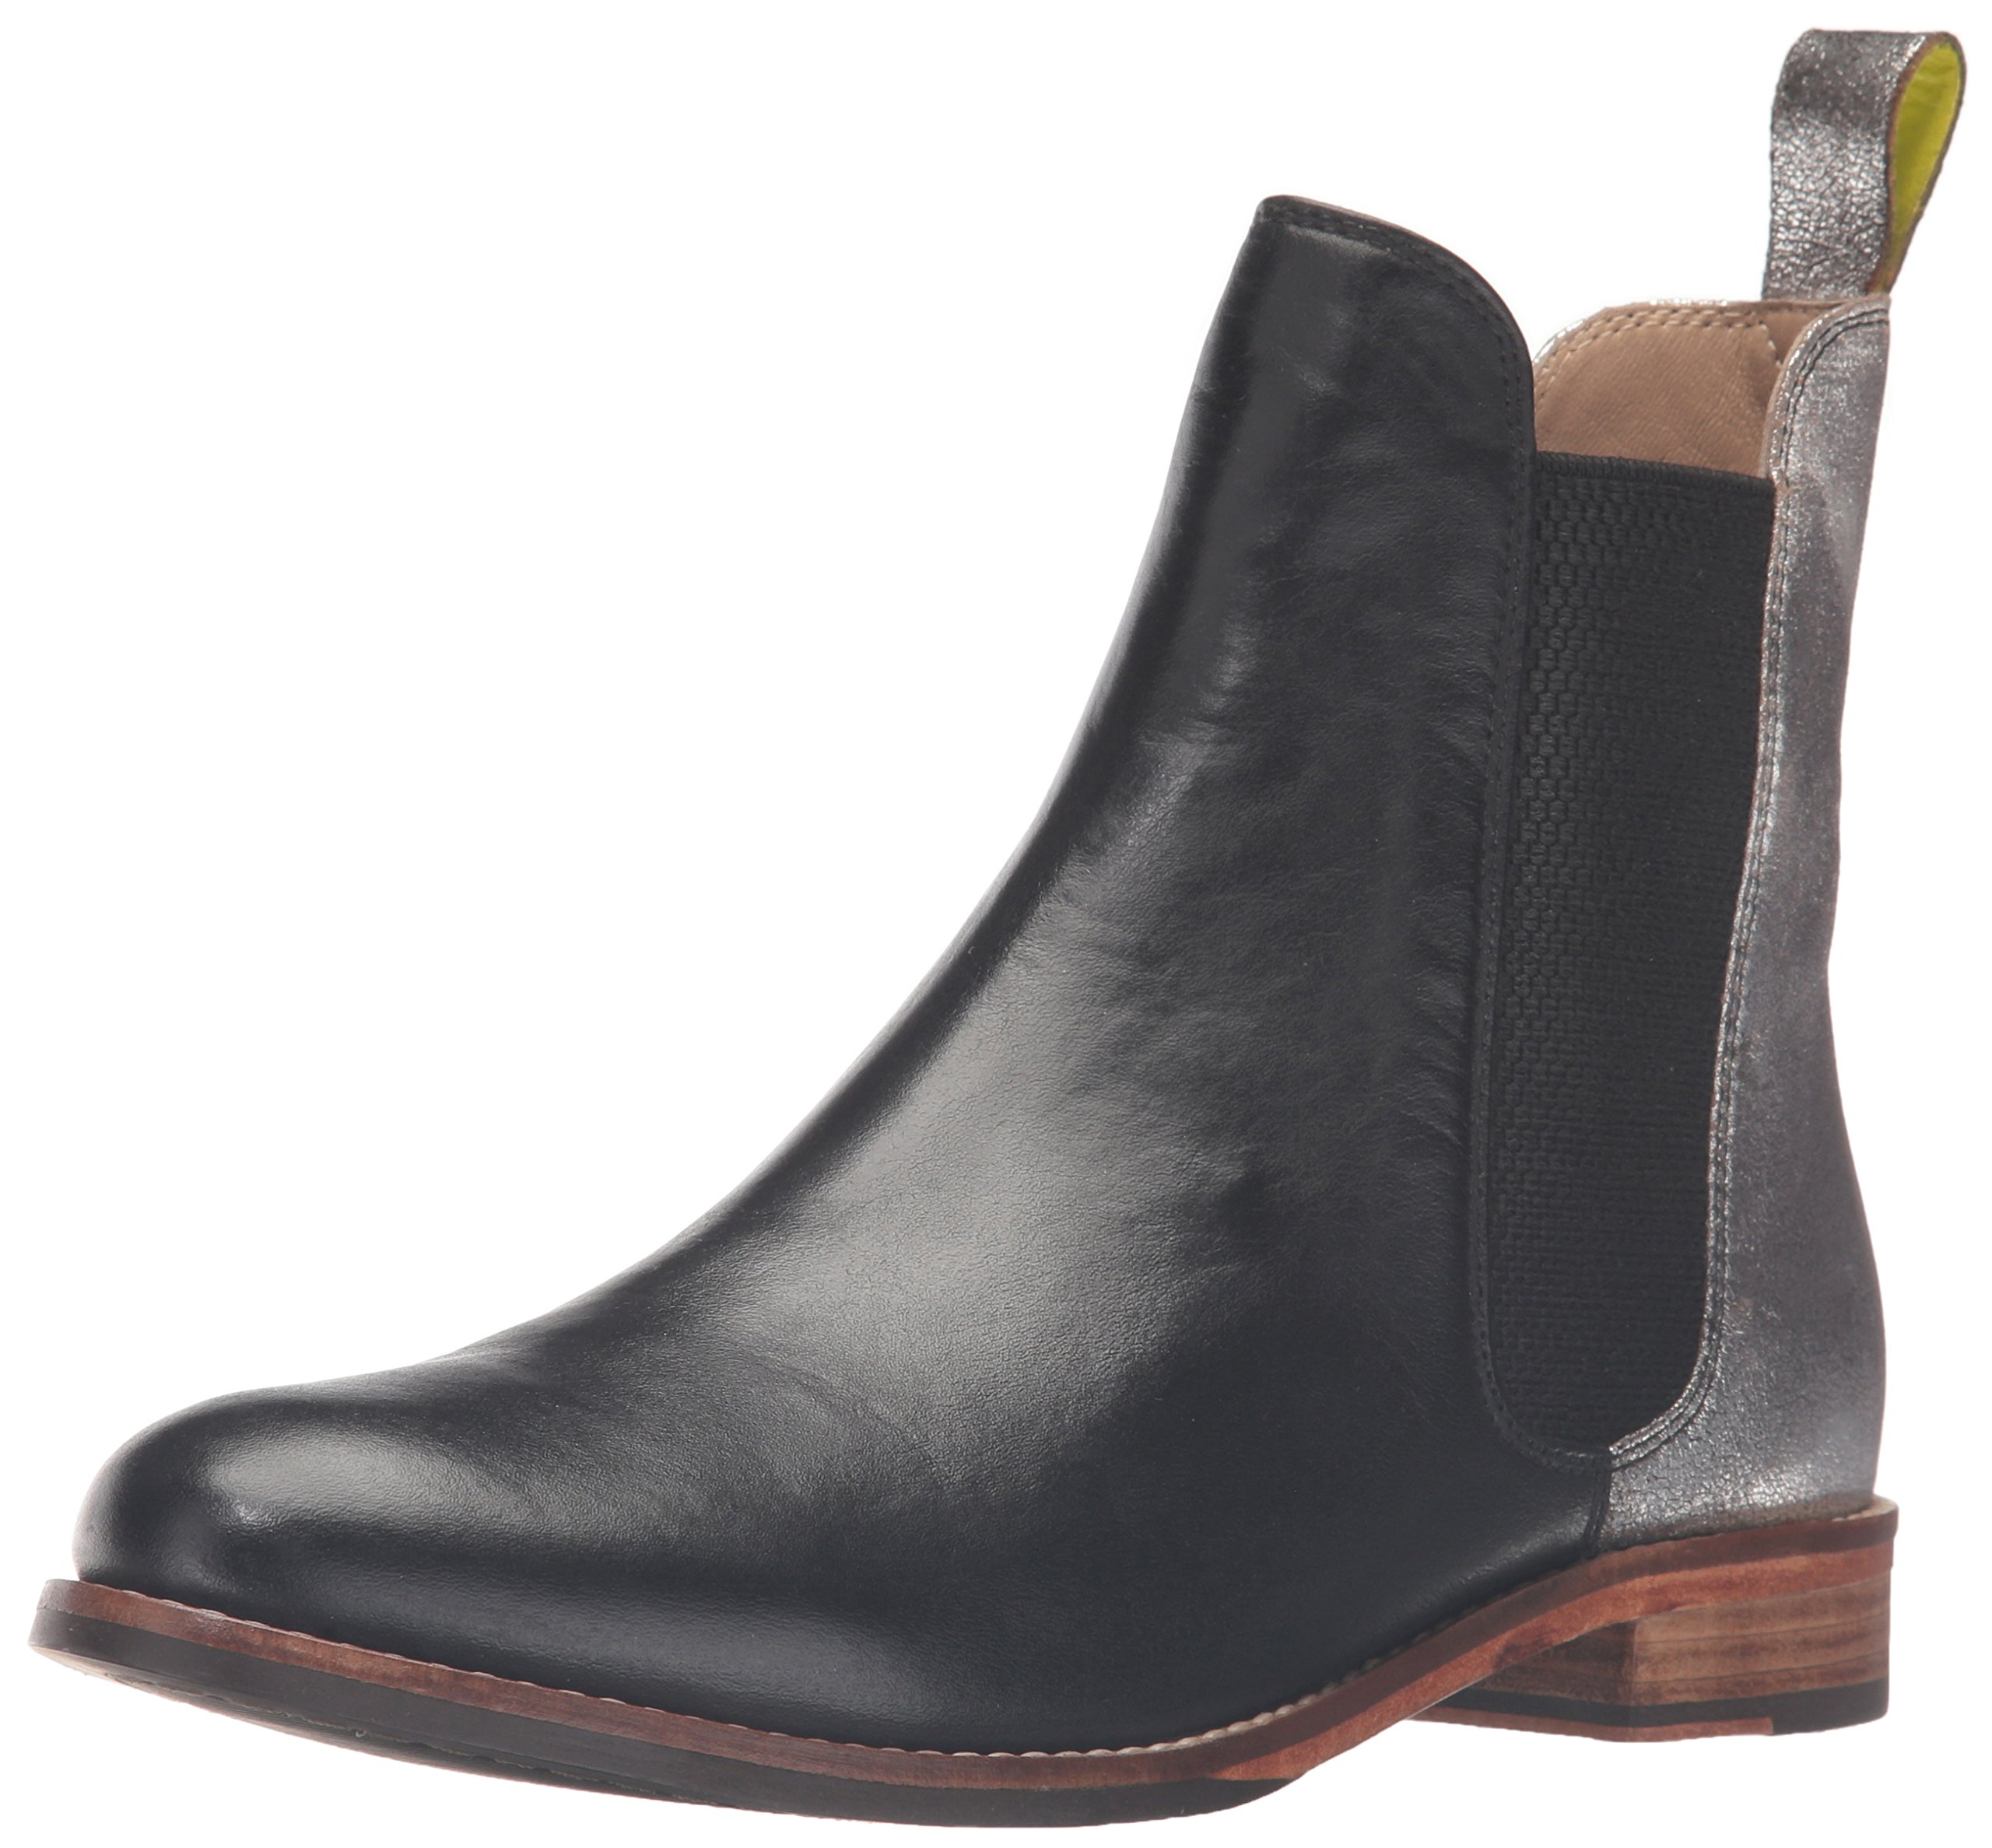 Joules Women's Westbourne Leather Chelsea Boots, Silver, 8 M US